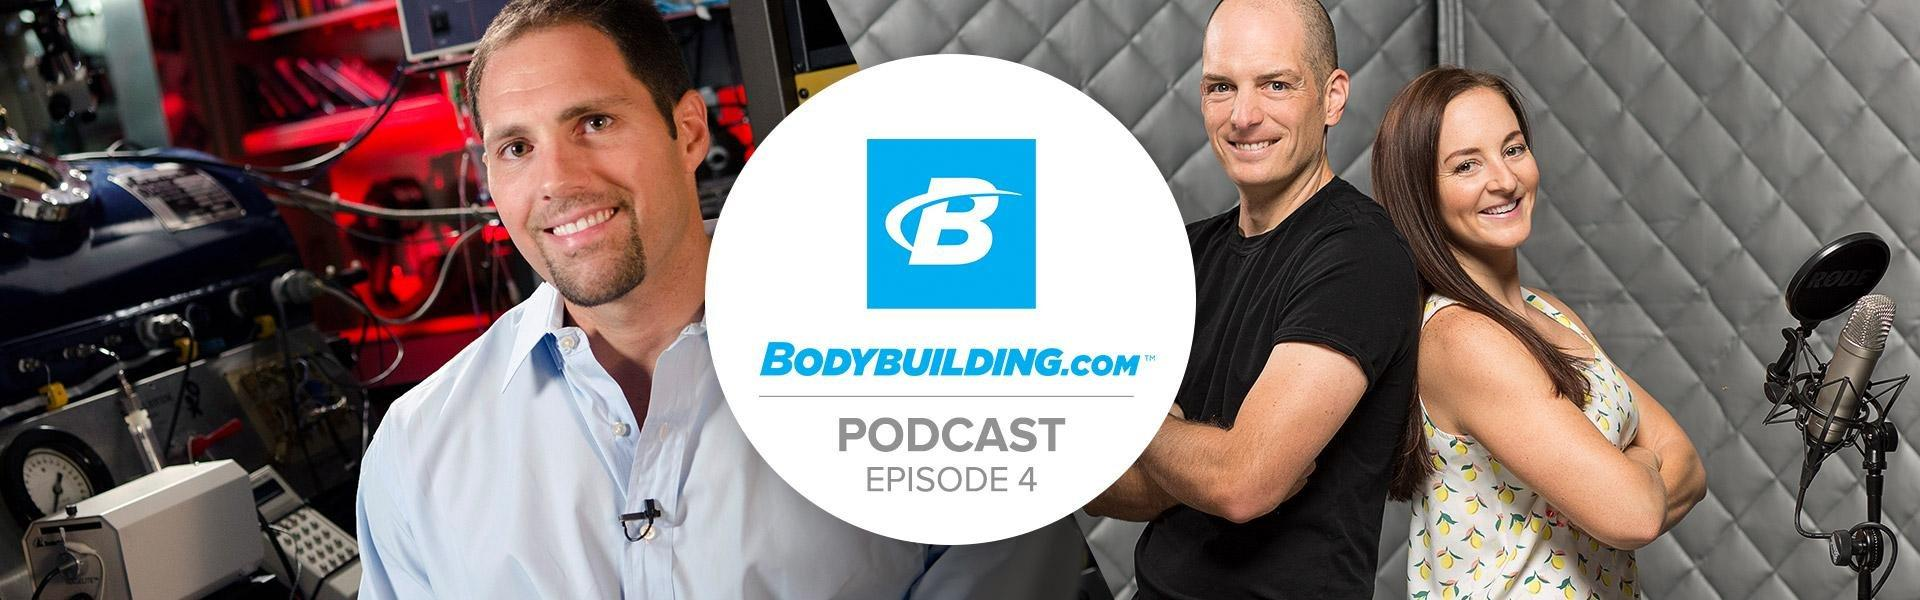 Podcast Episode 4: Dr. Dominic D'agostino On The Ketogenic Diet